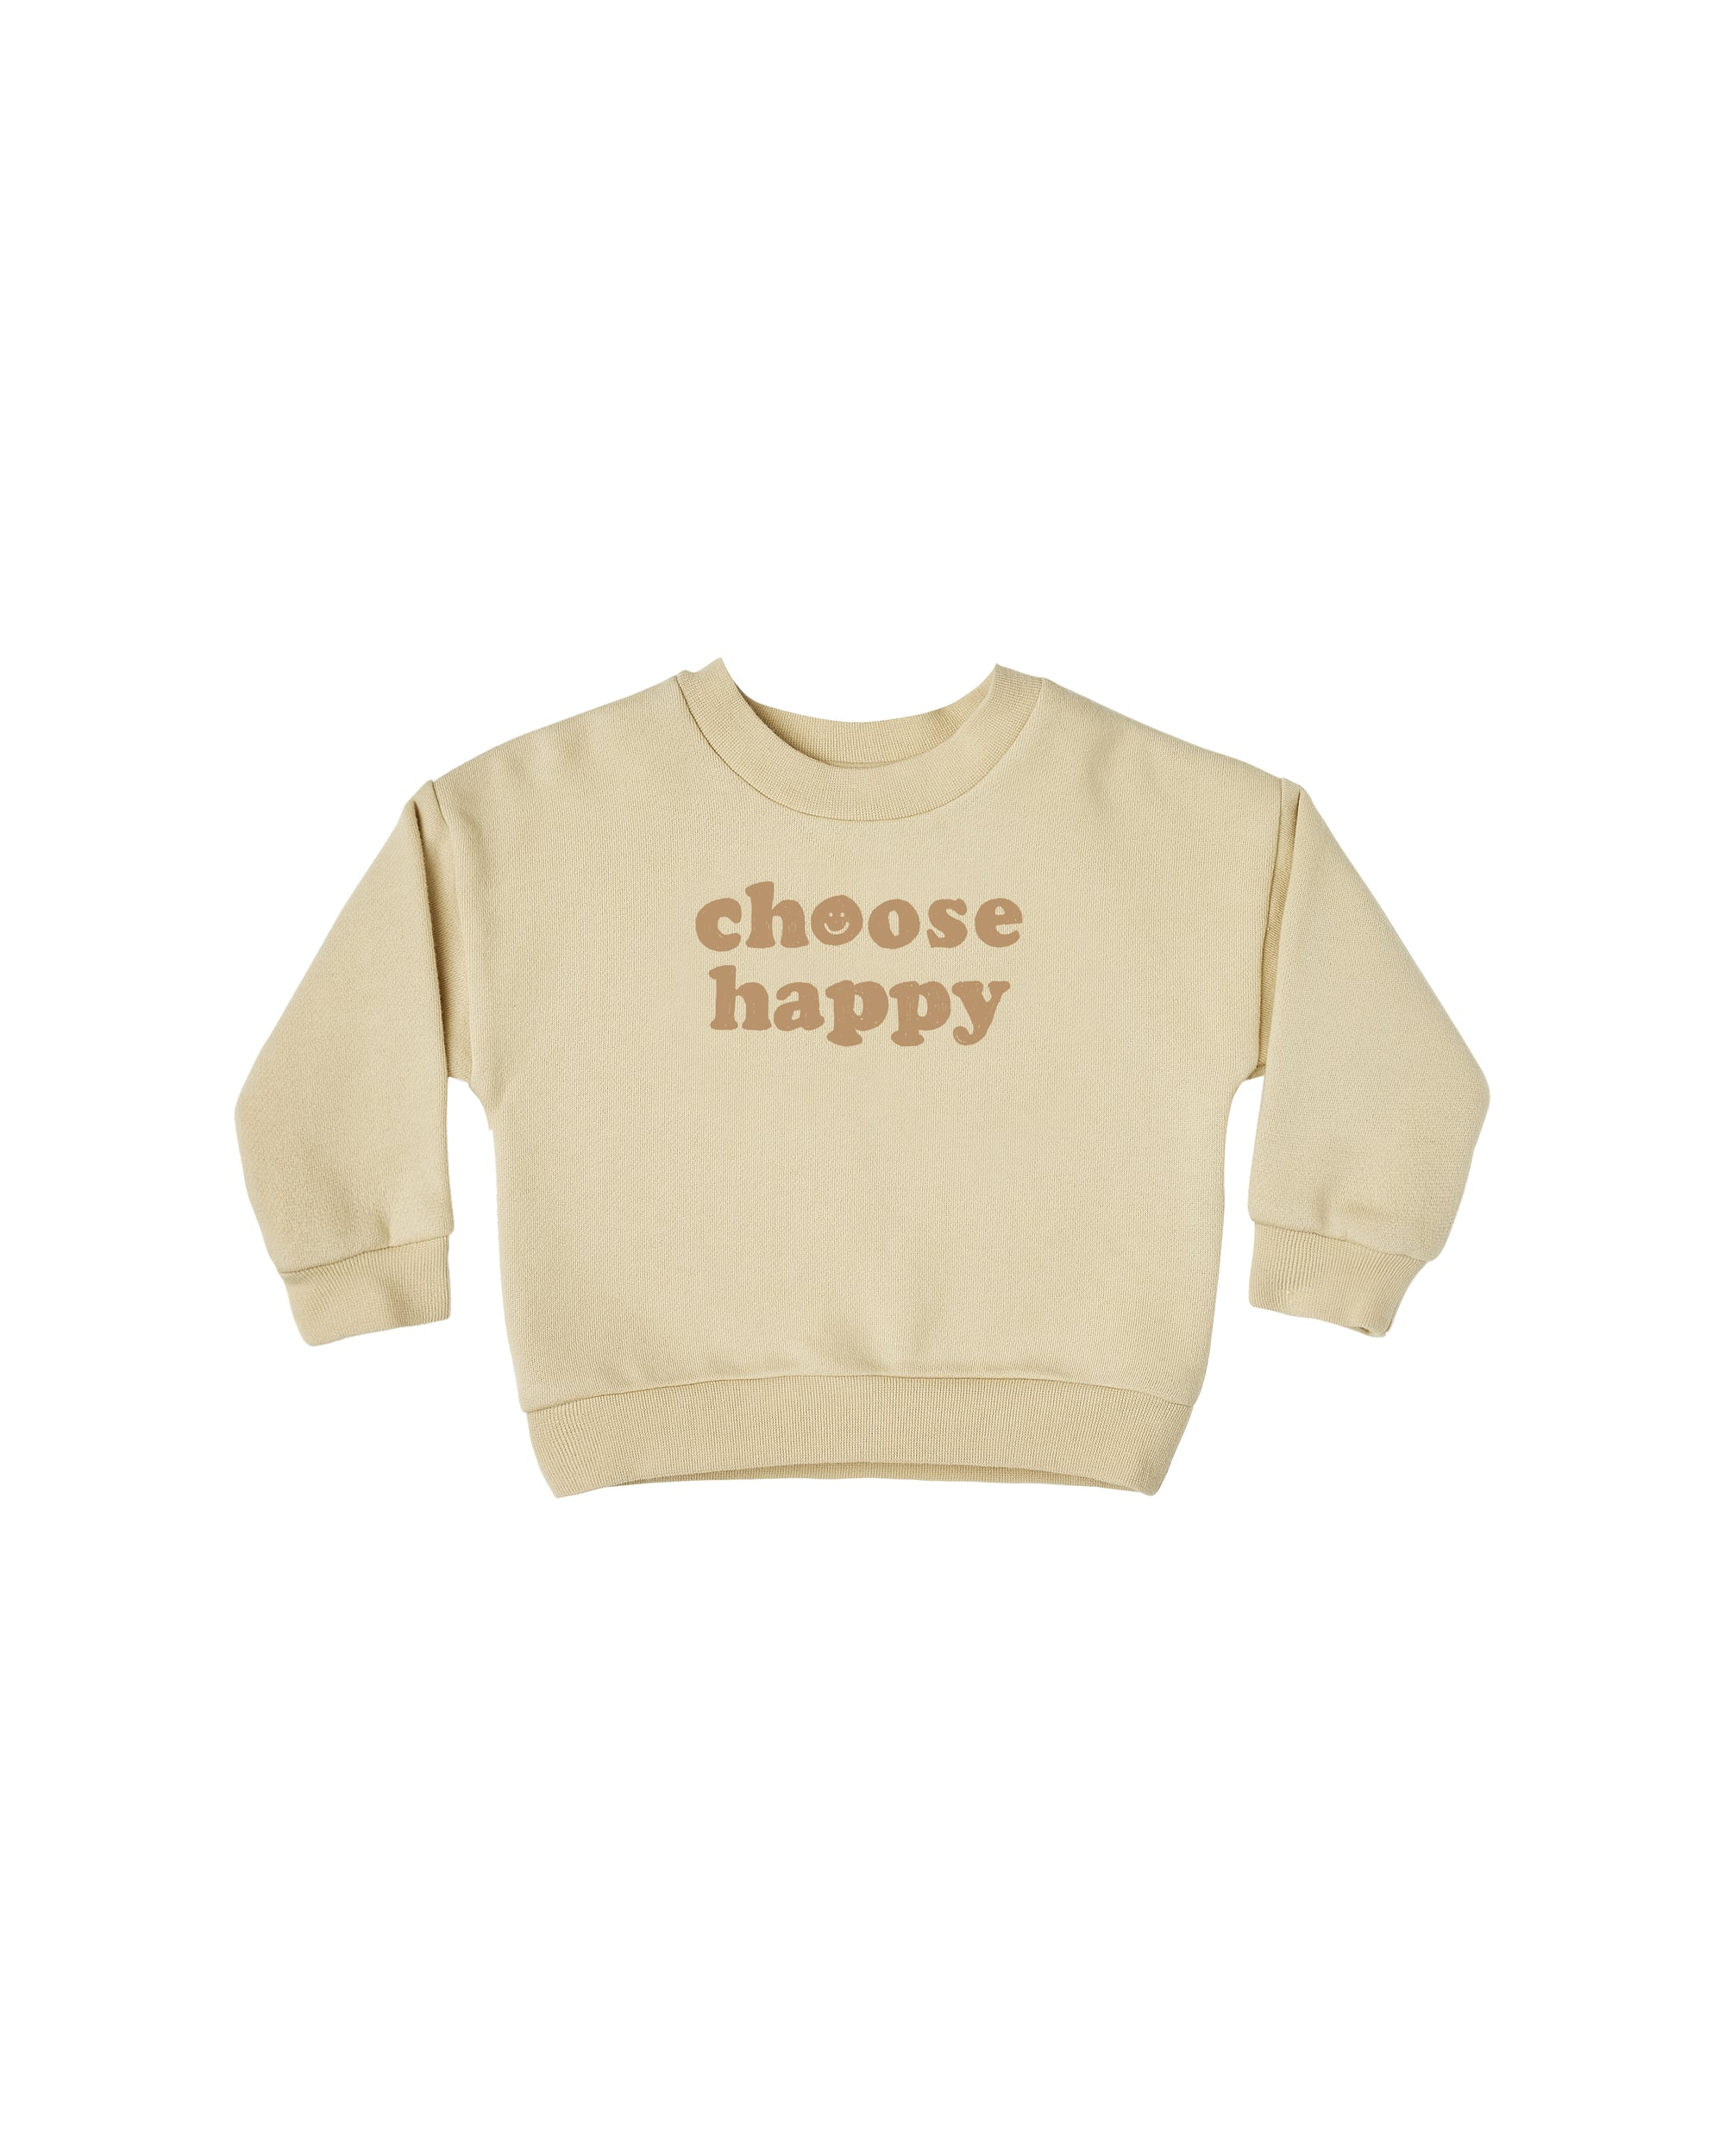 RYLEE + CRU CREWNECK / CHOOSE HAPPY